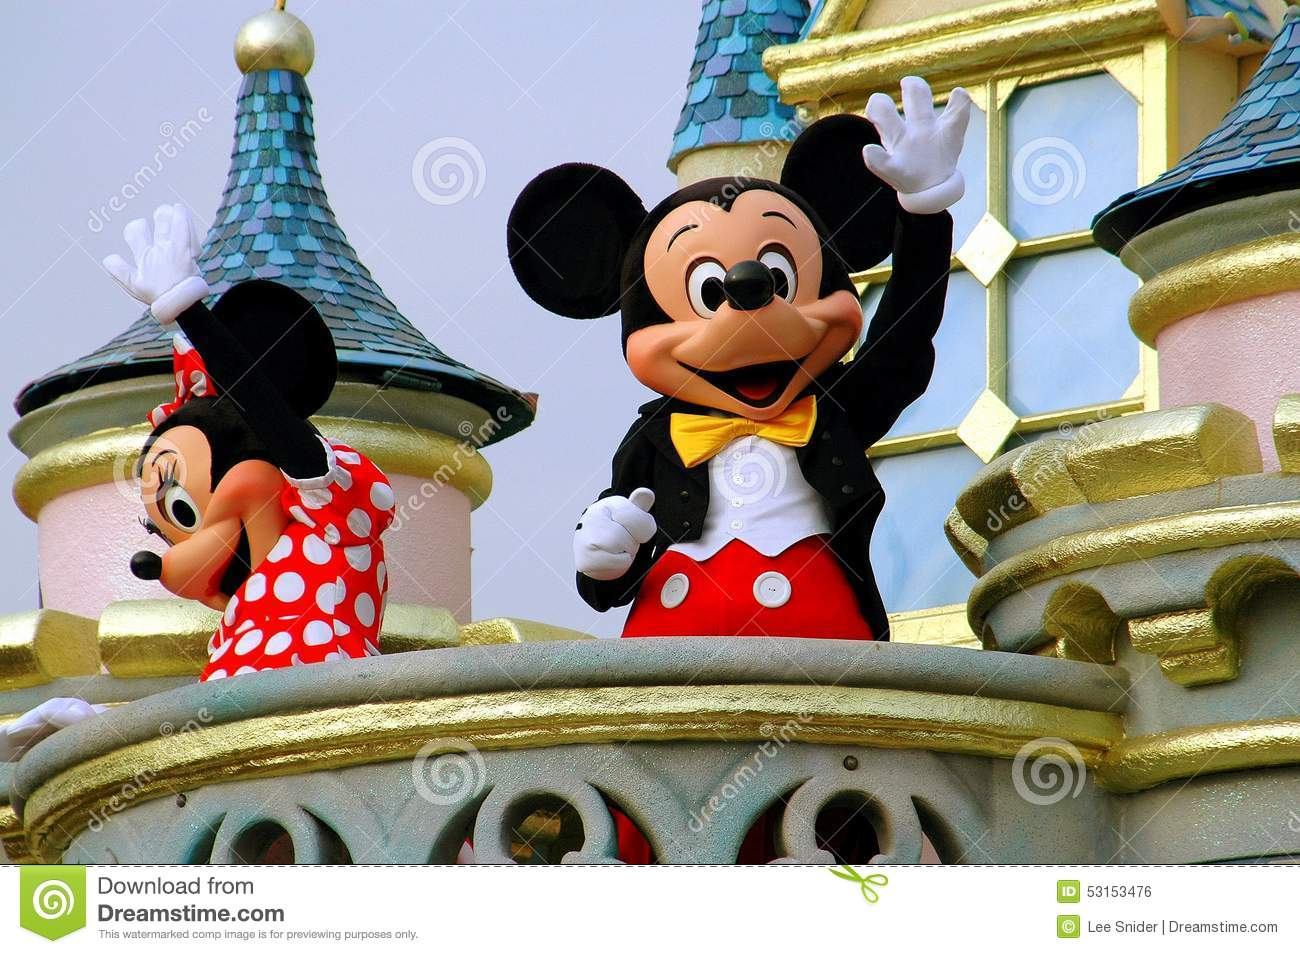 Hong Kong, Chine : Mickey et Minnie Mouse chez Disneyland